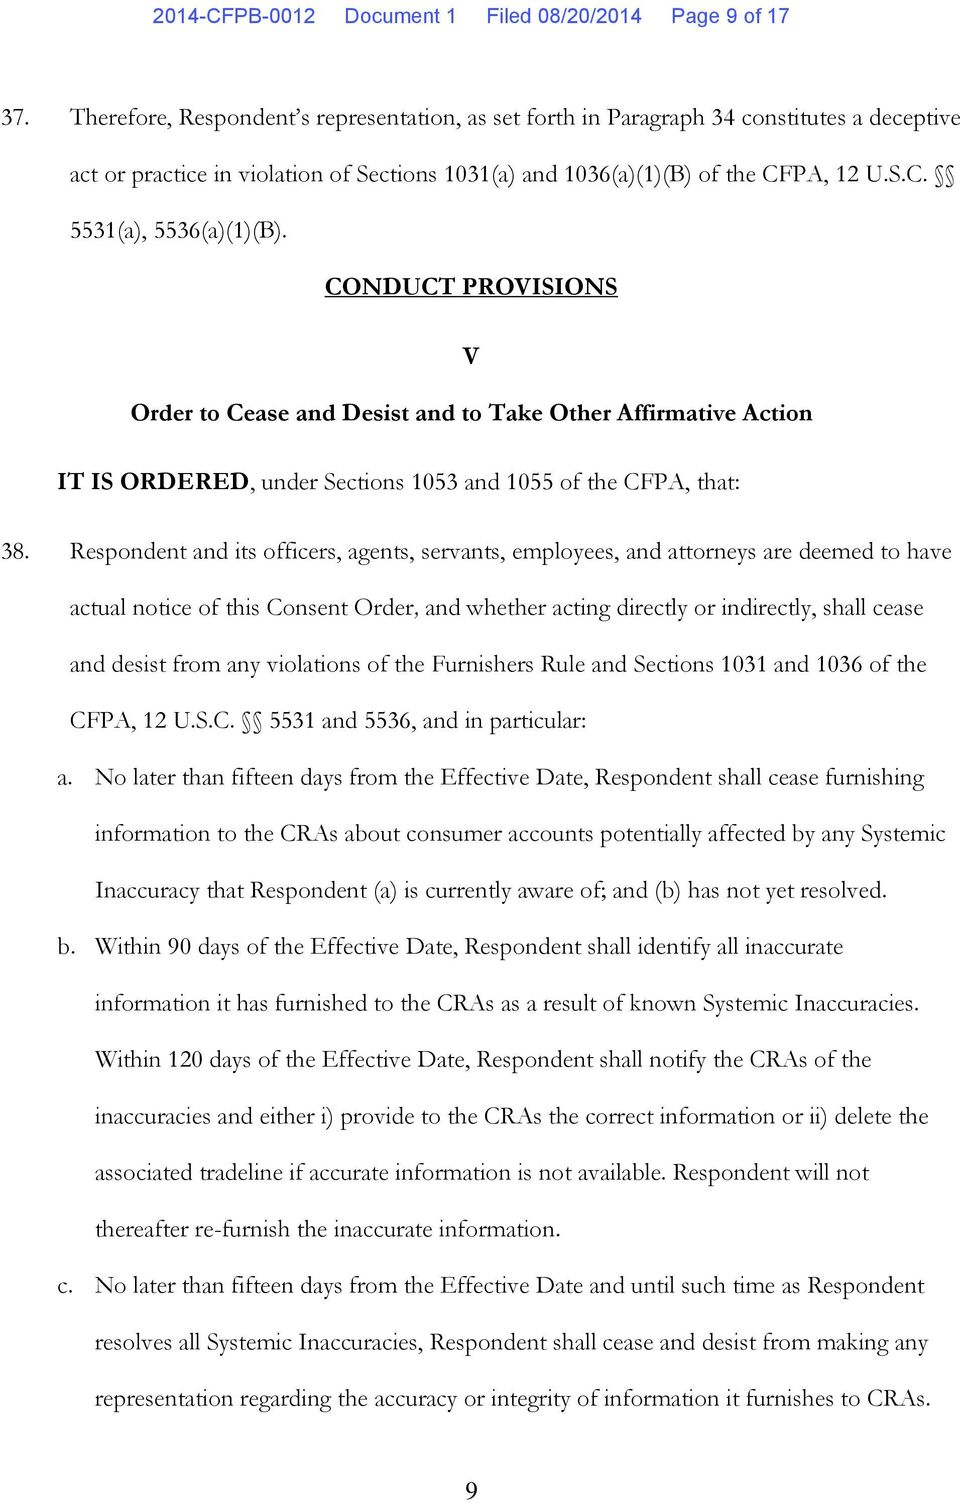 CONDUCT PROVISIONS V Order to Cease and Desist and to Take Other Affirmative Action IT IS ORDERED, under Sections 1053 and 1055 of the CFPA, that: 38.